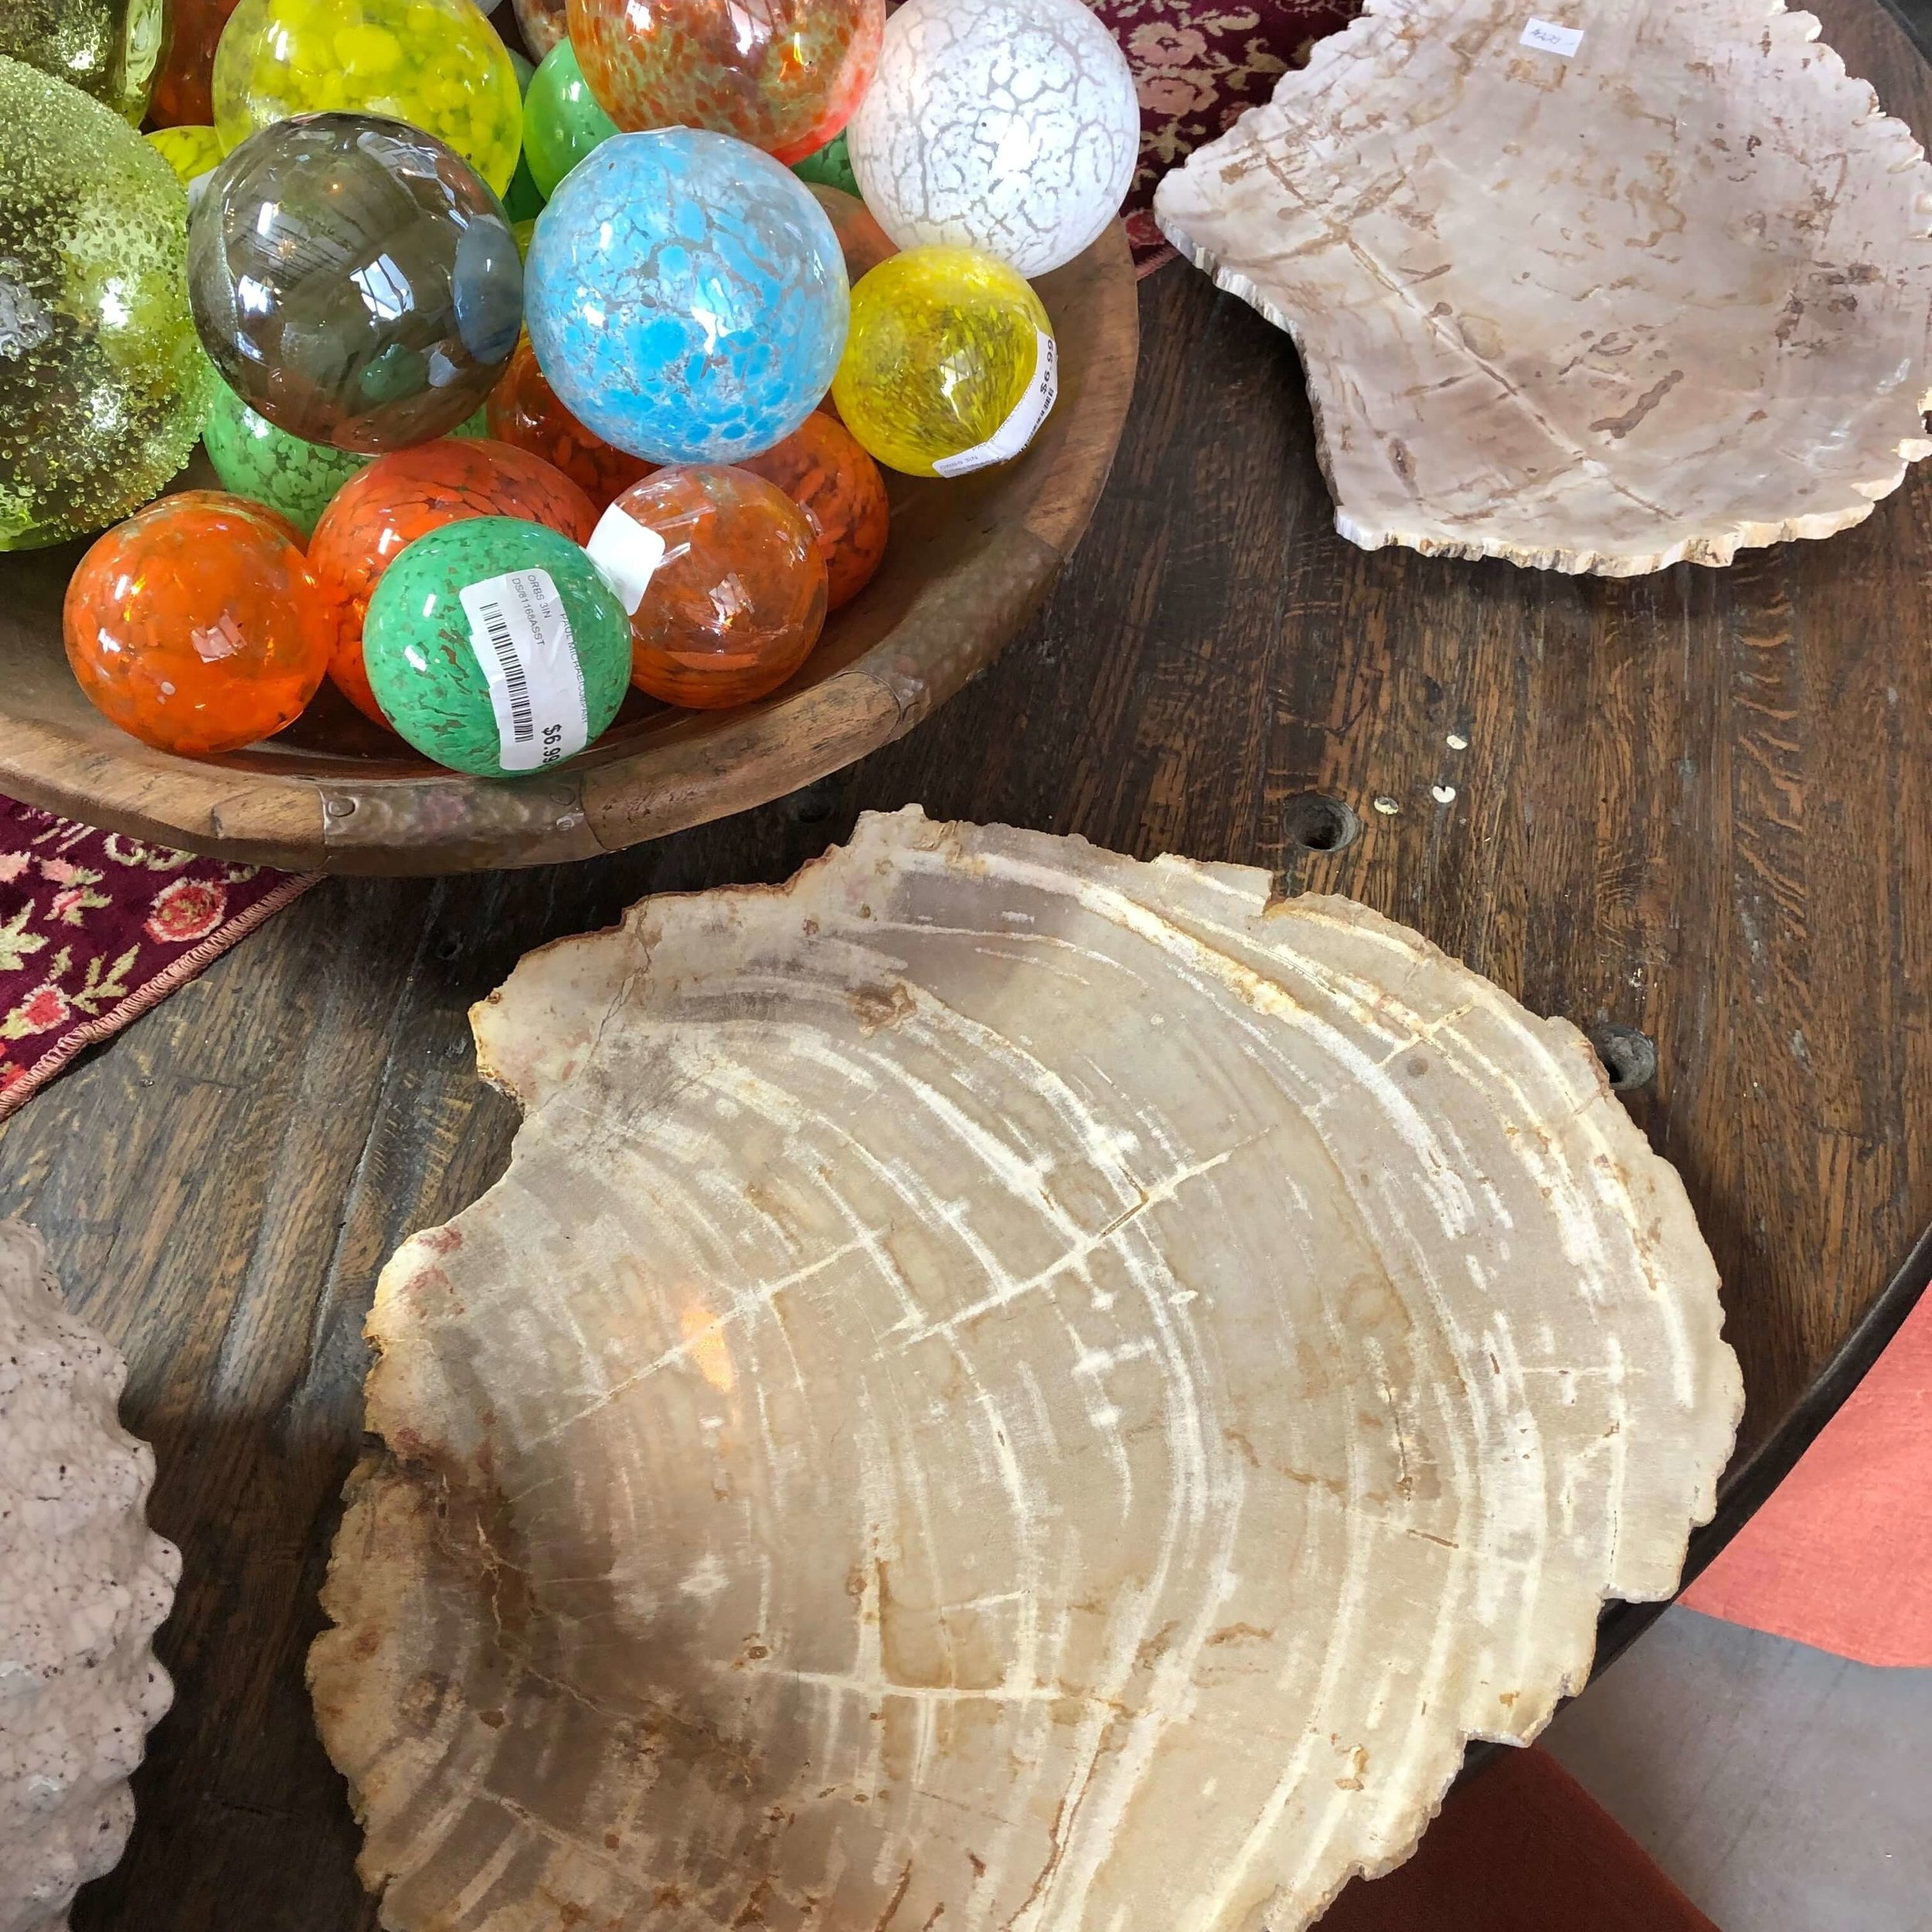 Slices of petrified wood for unique charger plates for your tabletop | Paul Michael, Market Hill, Round Top Antiques Fair